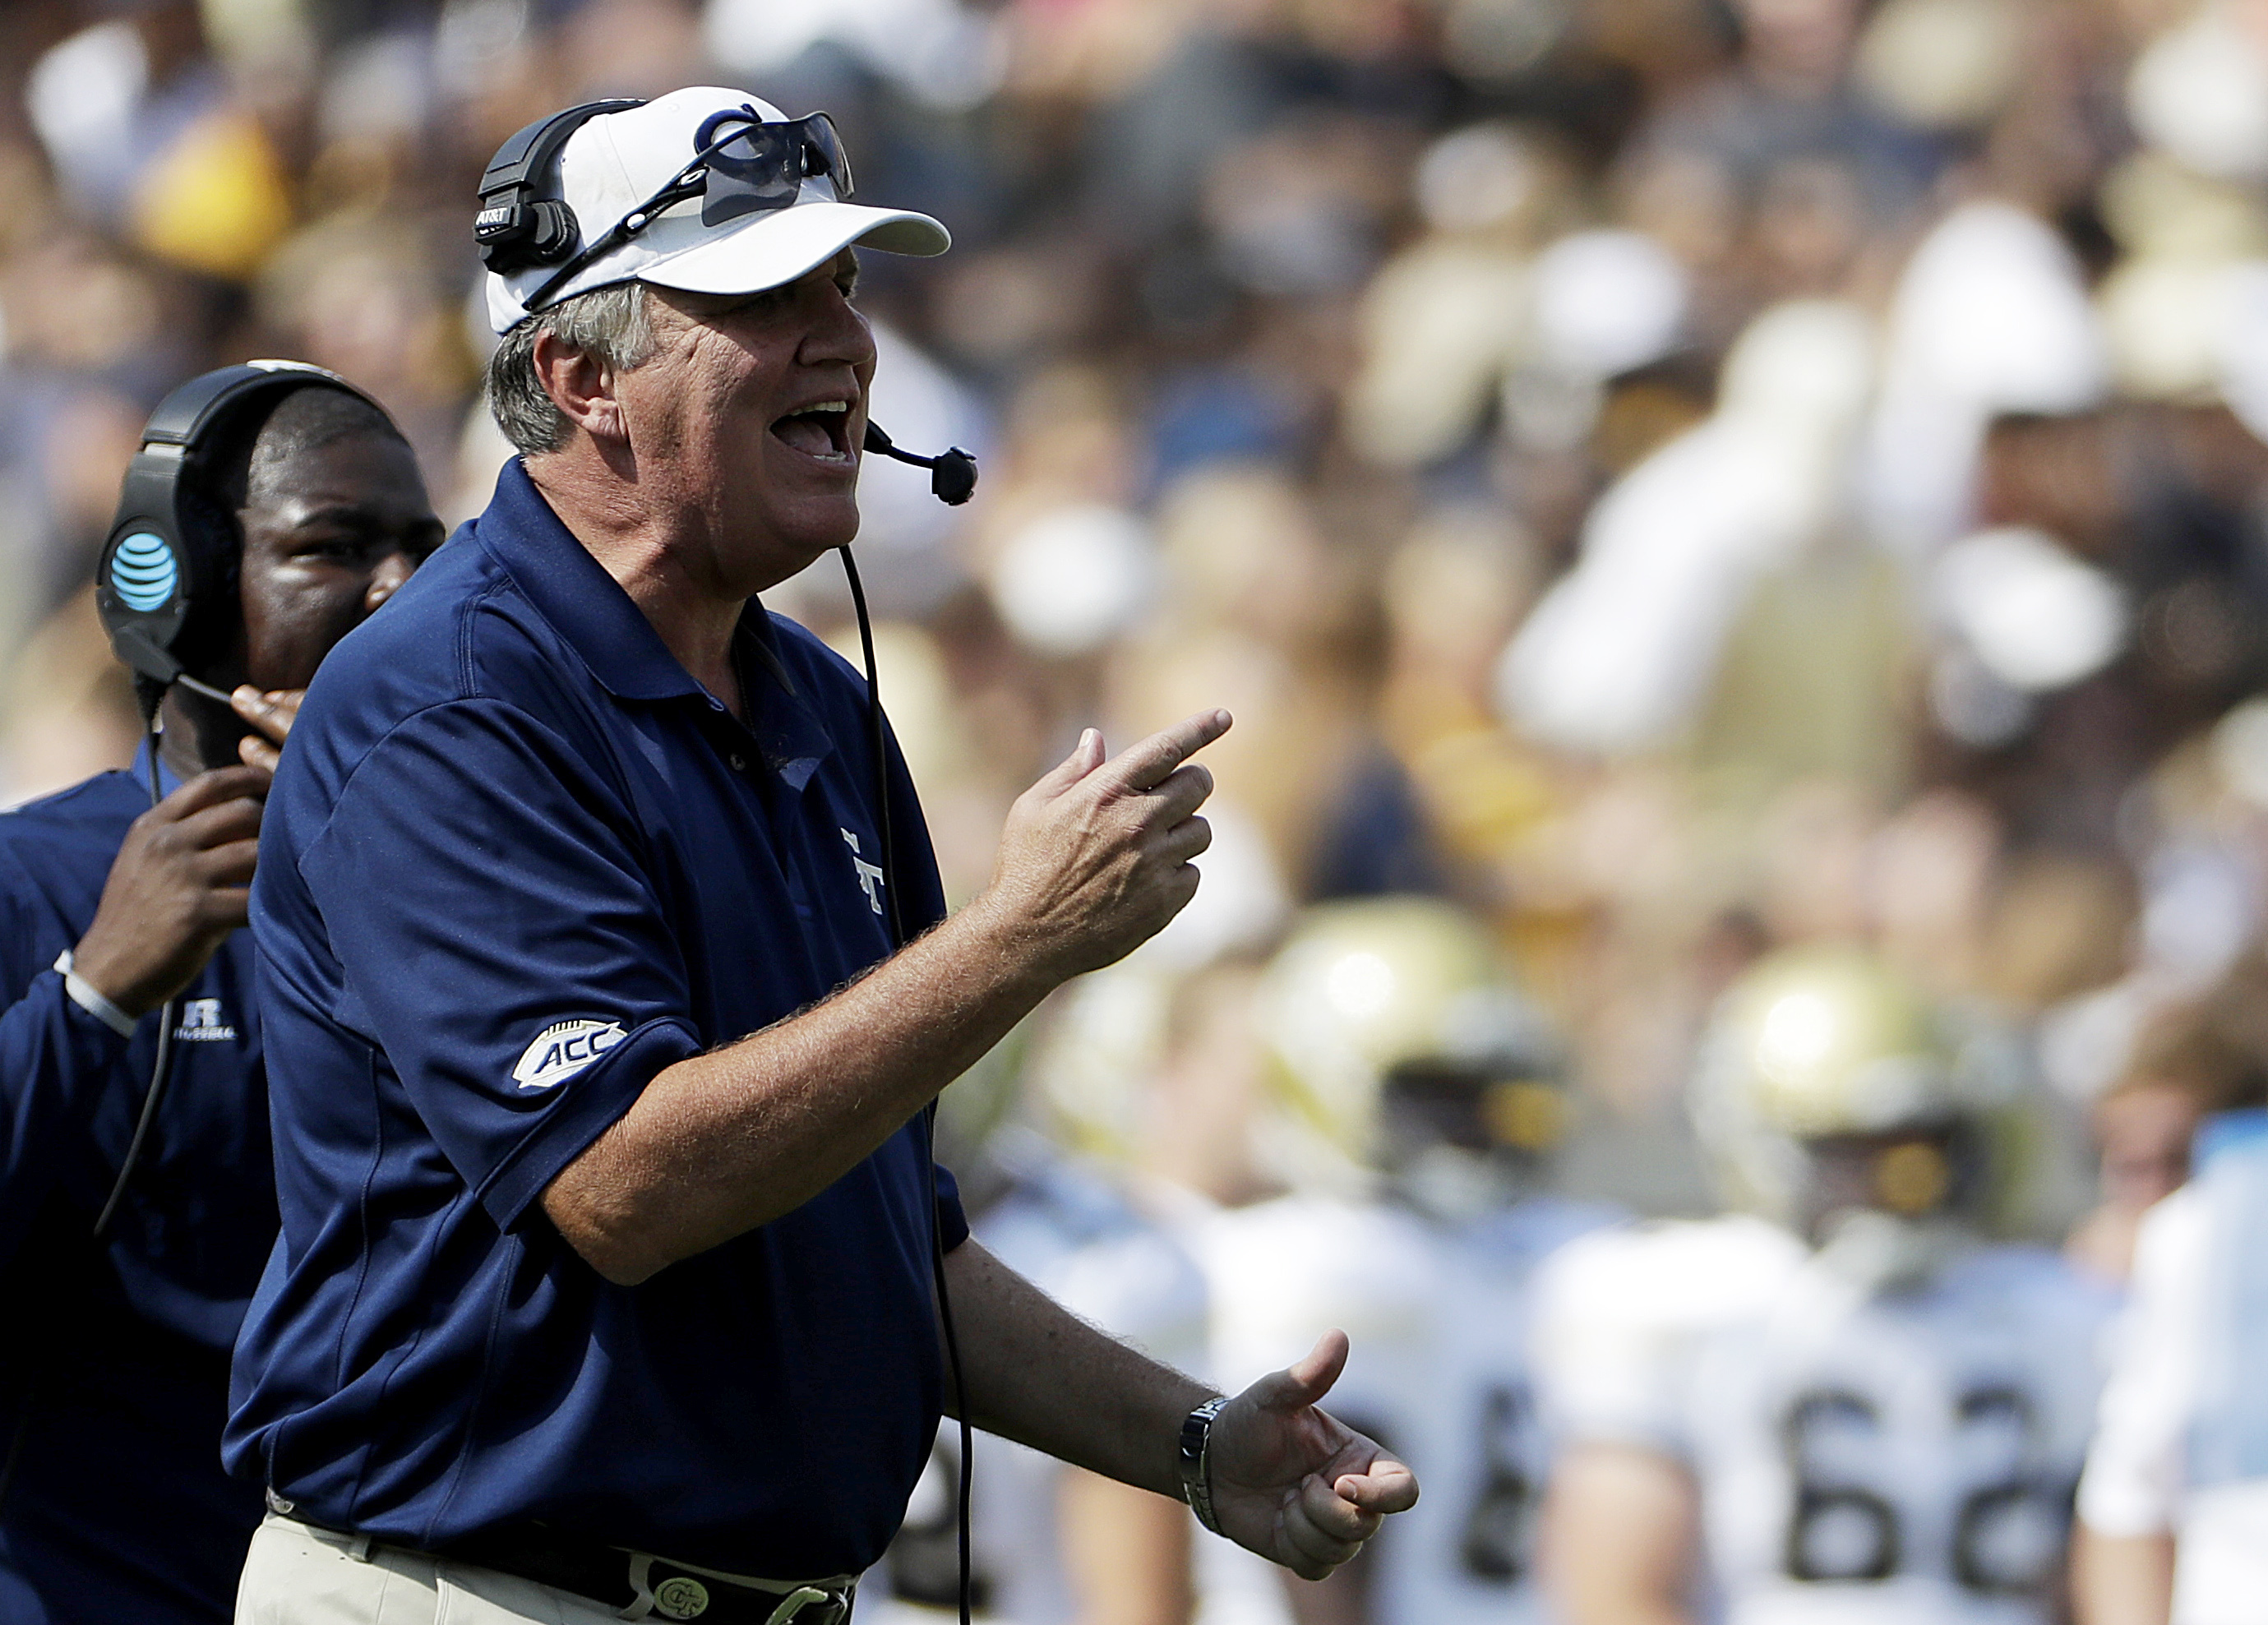 FILE - In this Sept. 10, 2016, file photo, Georgia Tech head coach Paul Johnson stands on the sideline in the first half of an NCAA college football game against Mercer in Atlanta. Georgia Tech coach Paul Johnson is still trying to find a good read on his